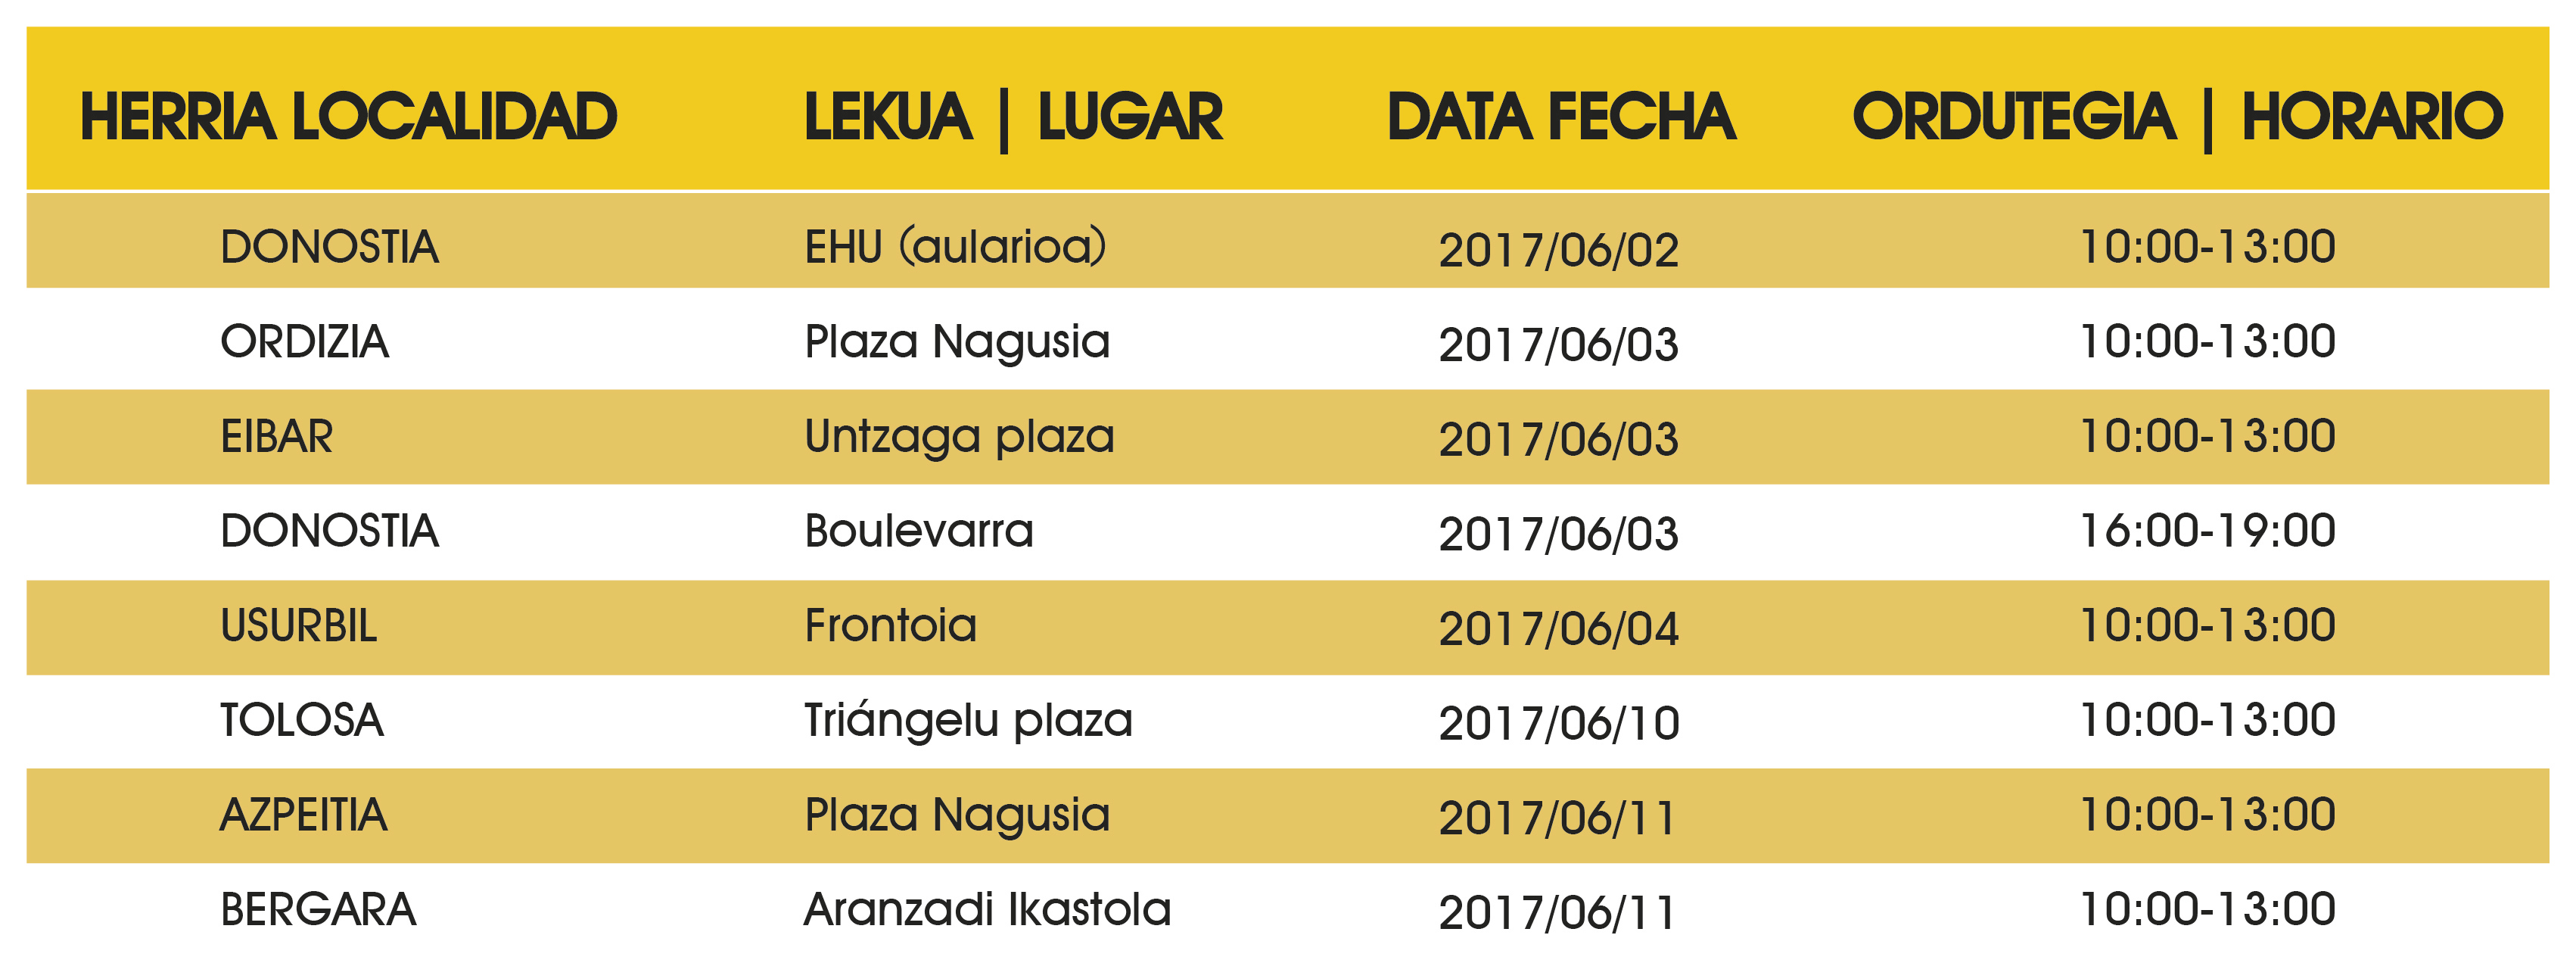 Tabla-localizaciones_sin-hondarribia_MIX-Total_2